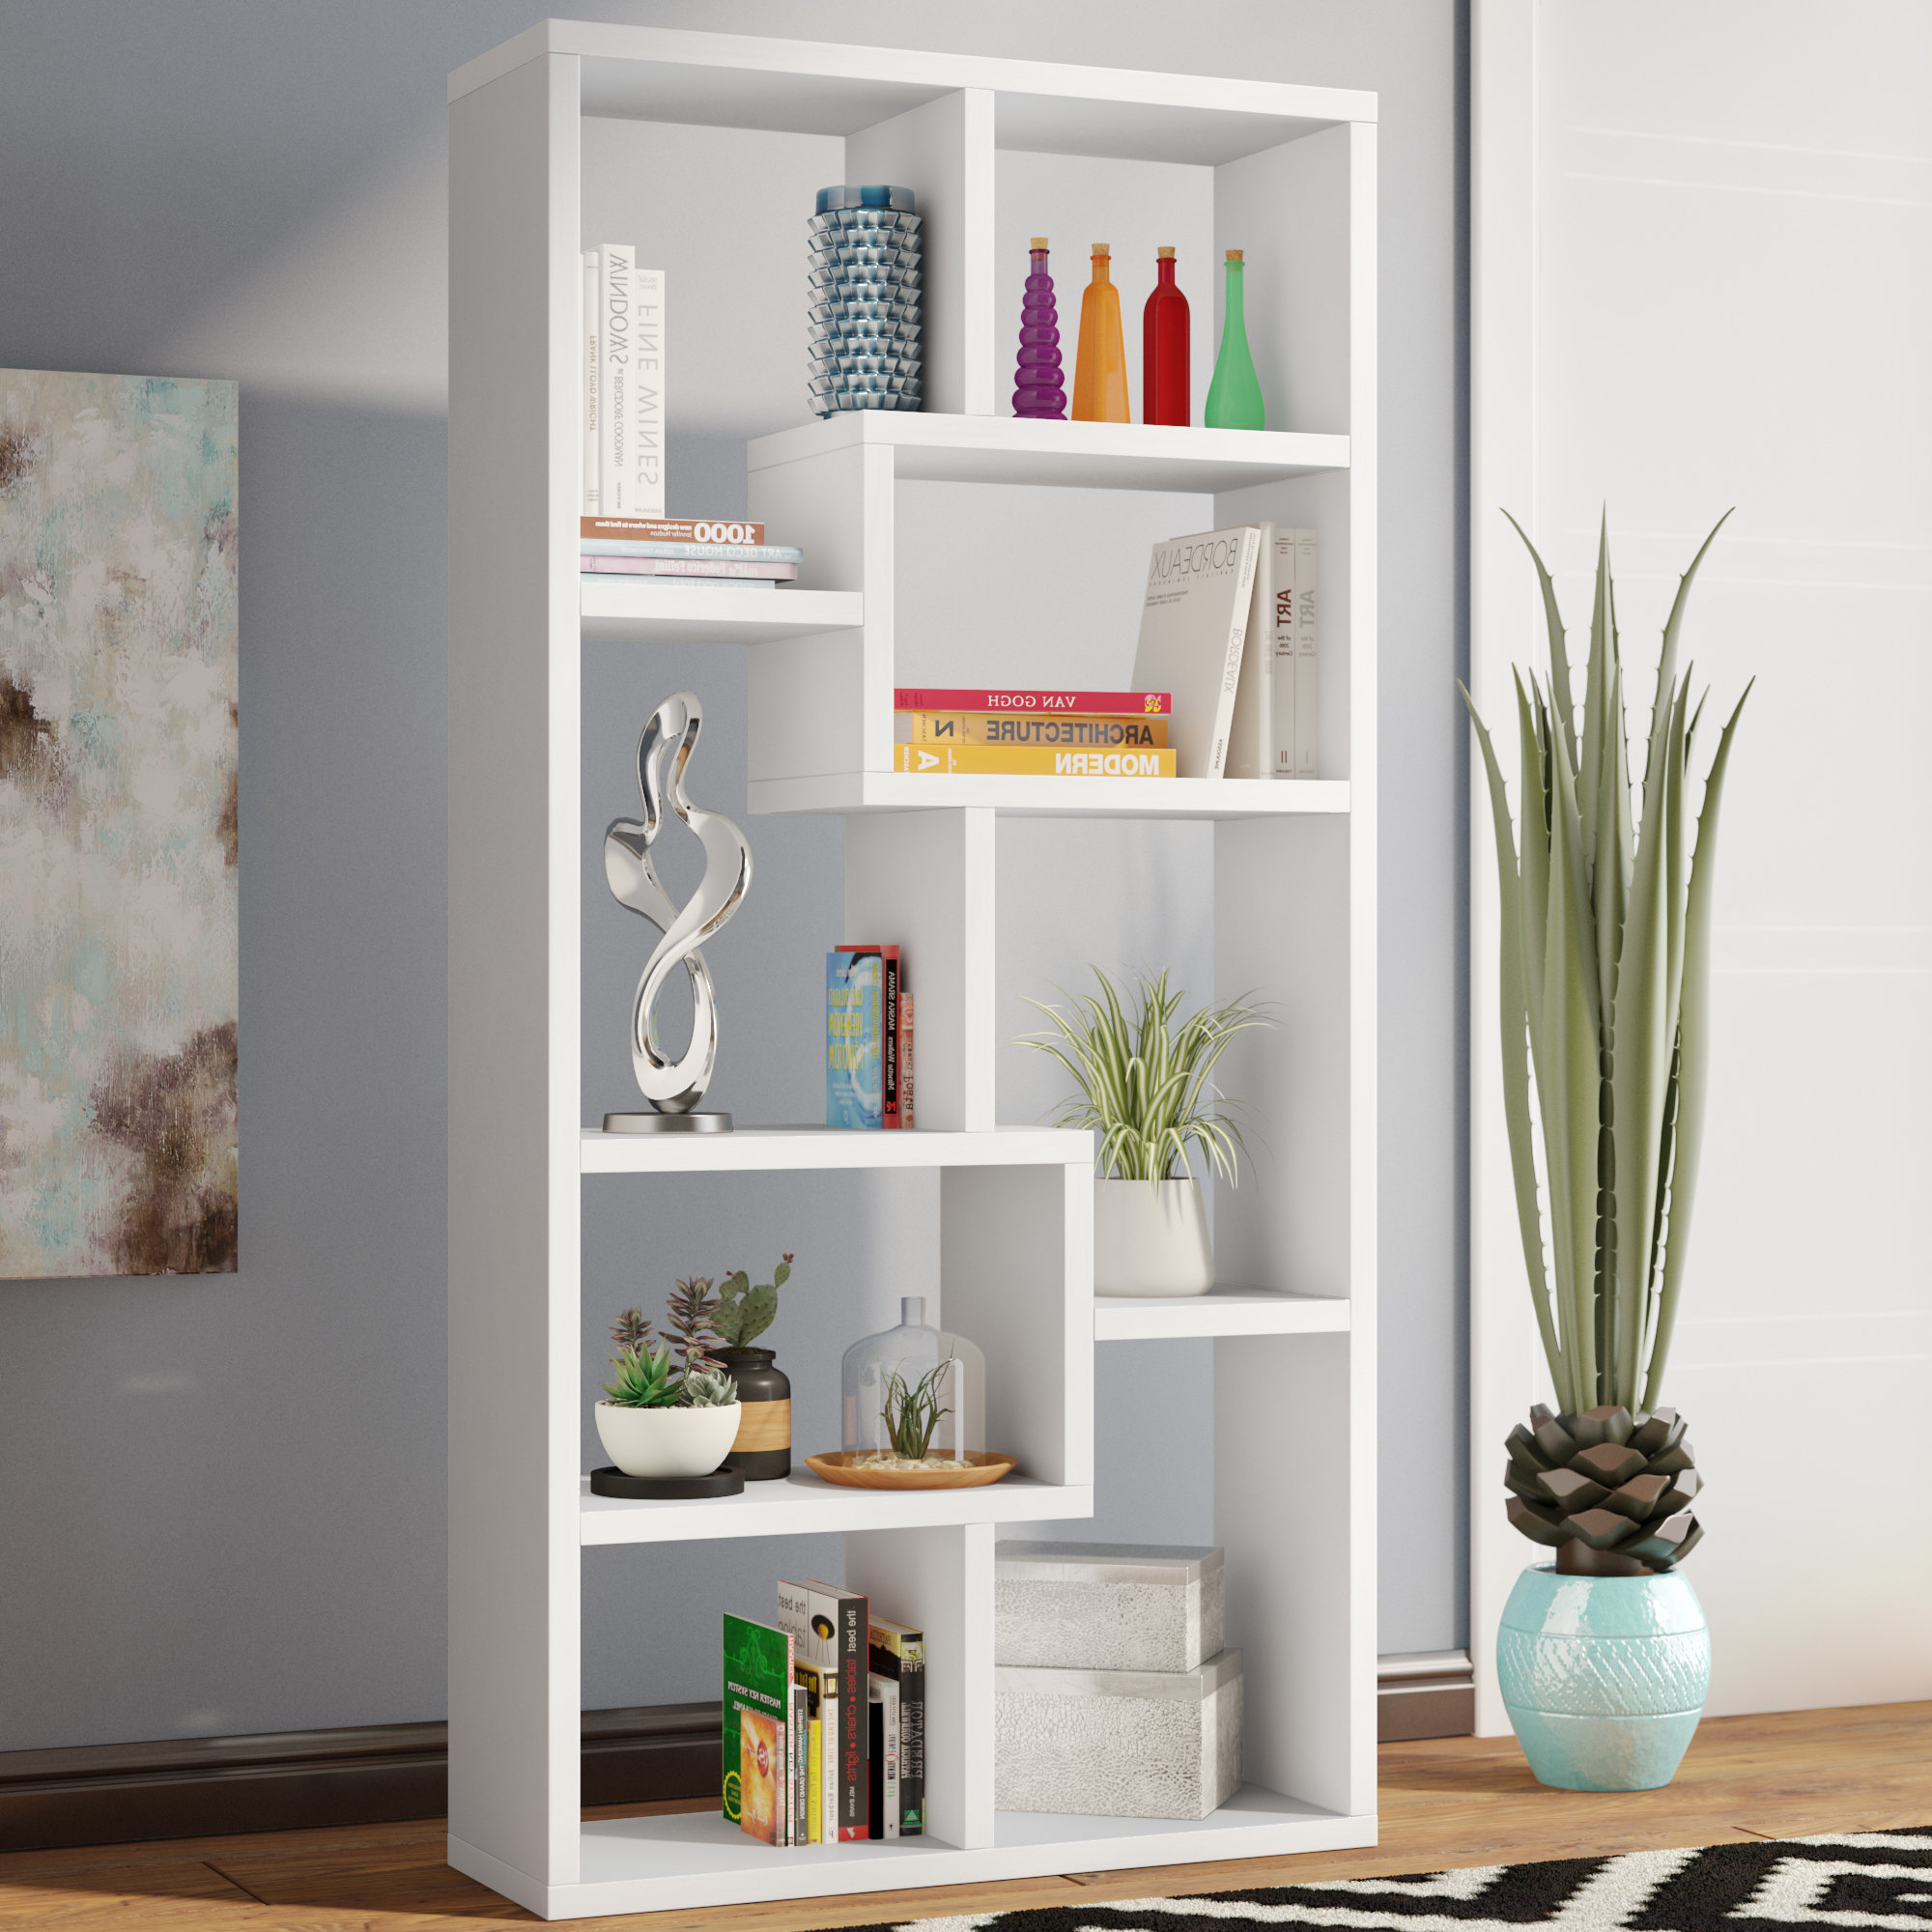 Wayfair Intended For Most Current Varga 5 Level Geometric Bookcases (View 19 of 20)